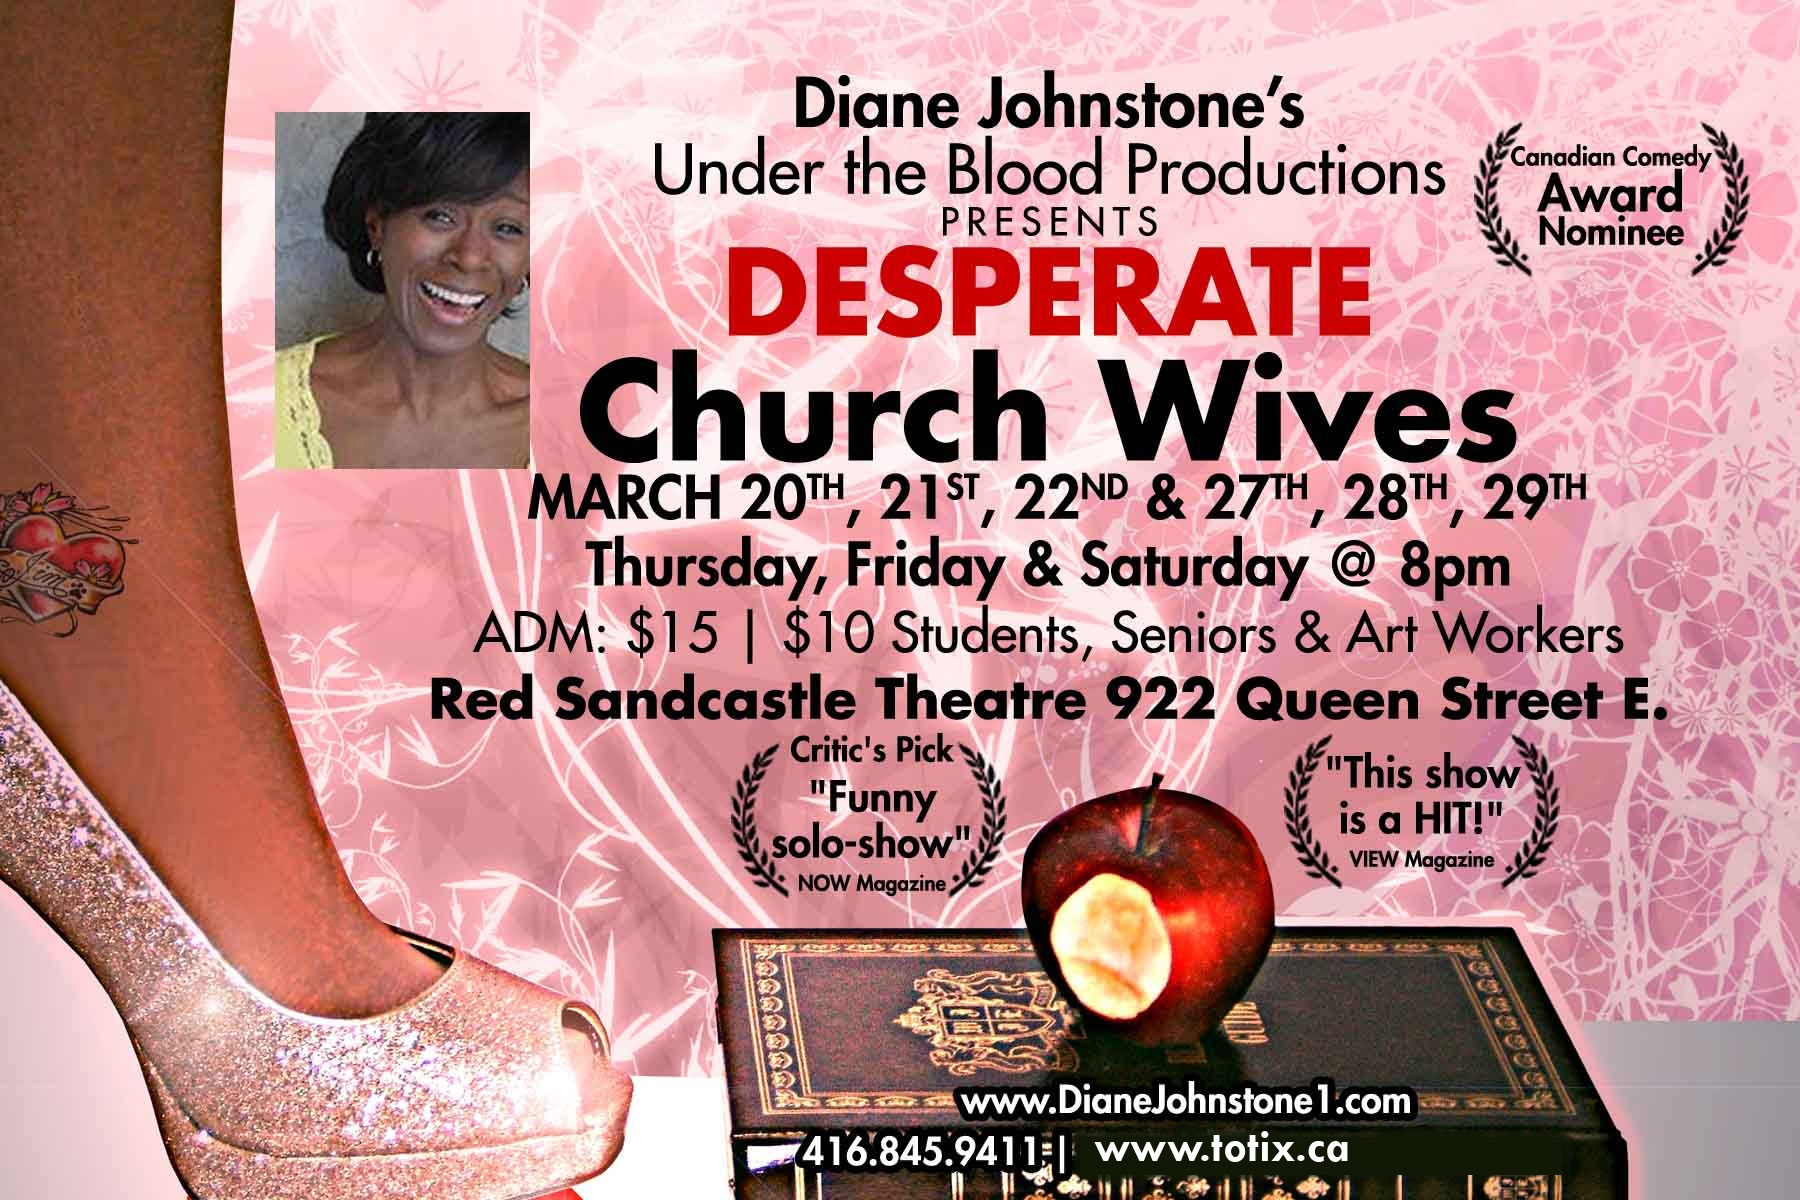 Red Sandcastle Poster - Desperate Church Wives